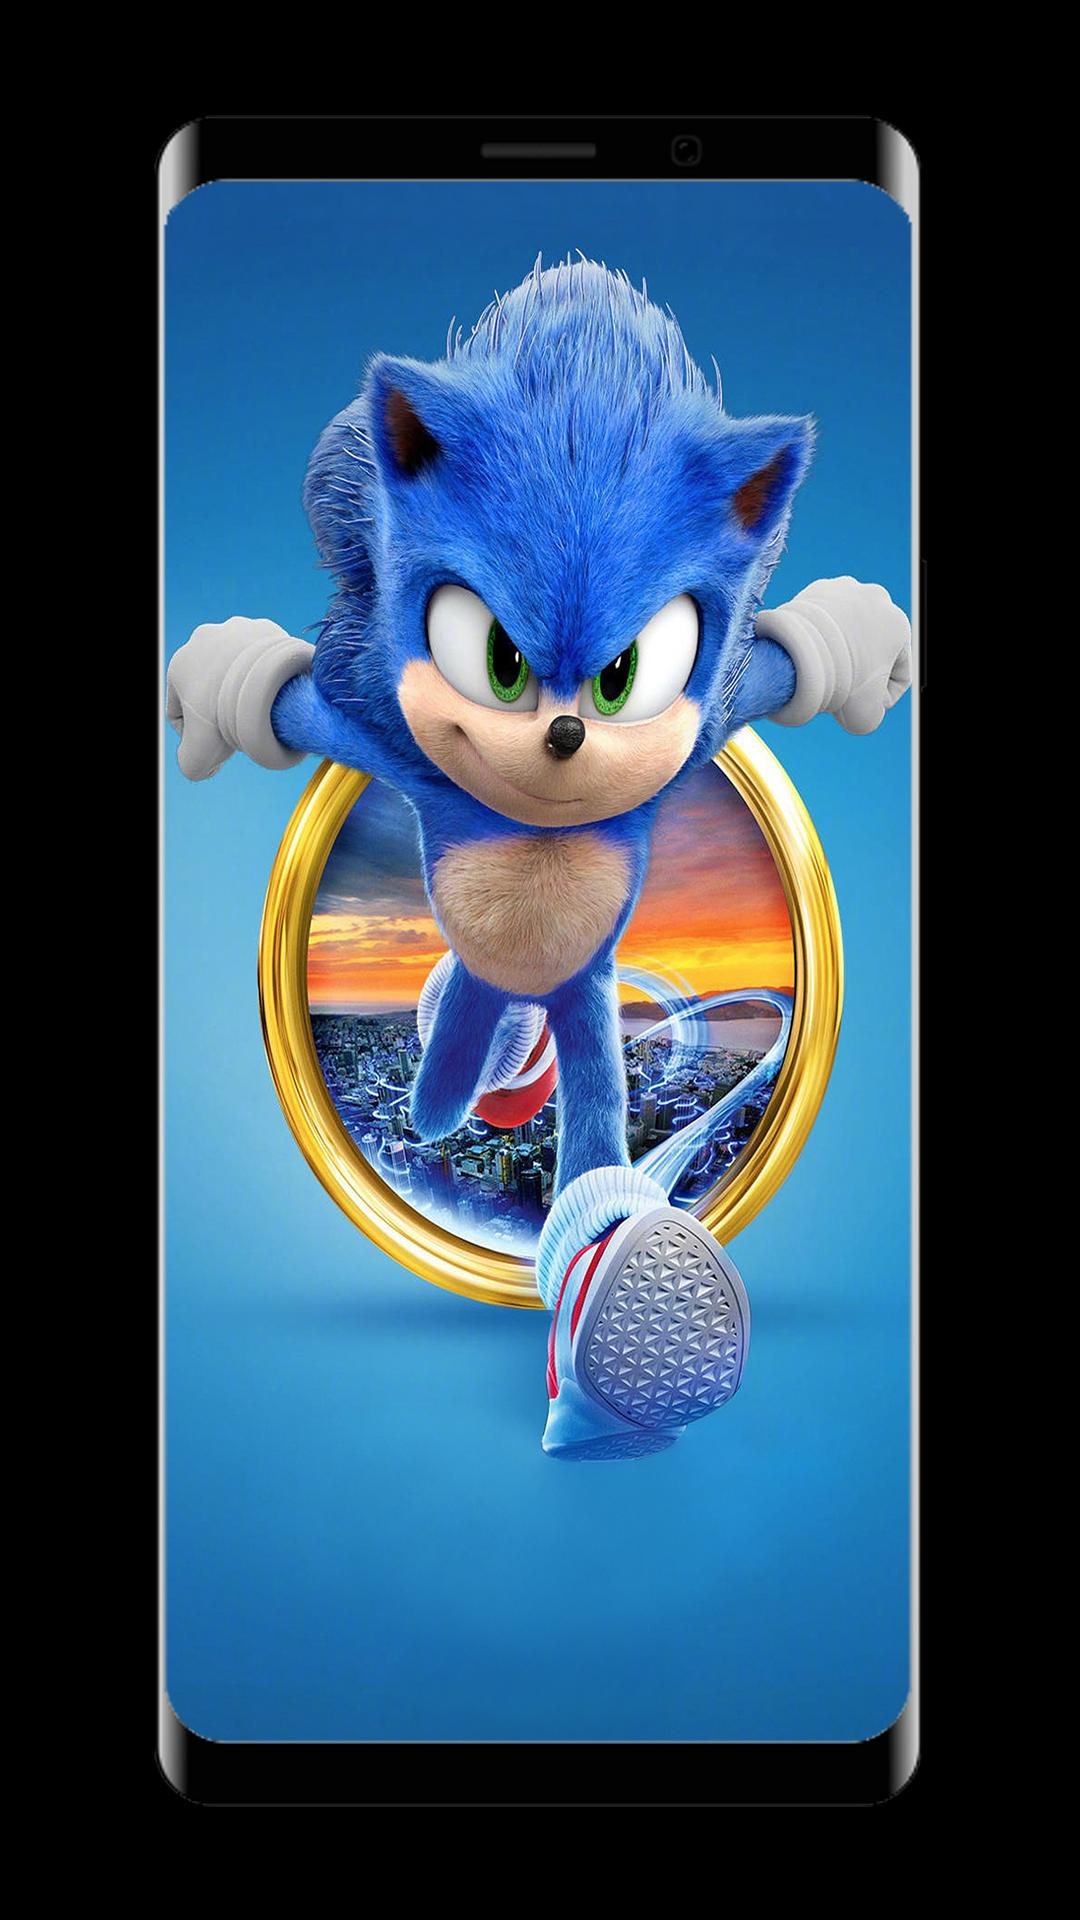 New Hedgehog Wallpapers 2020 For Android Apk Download